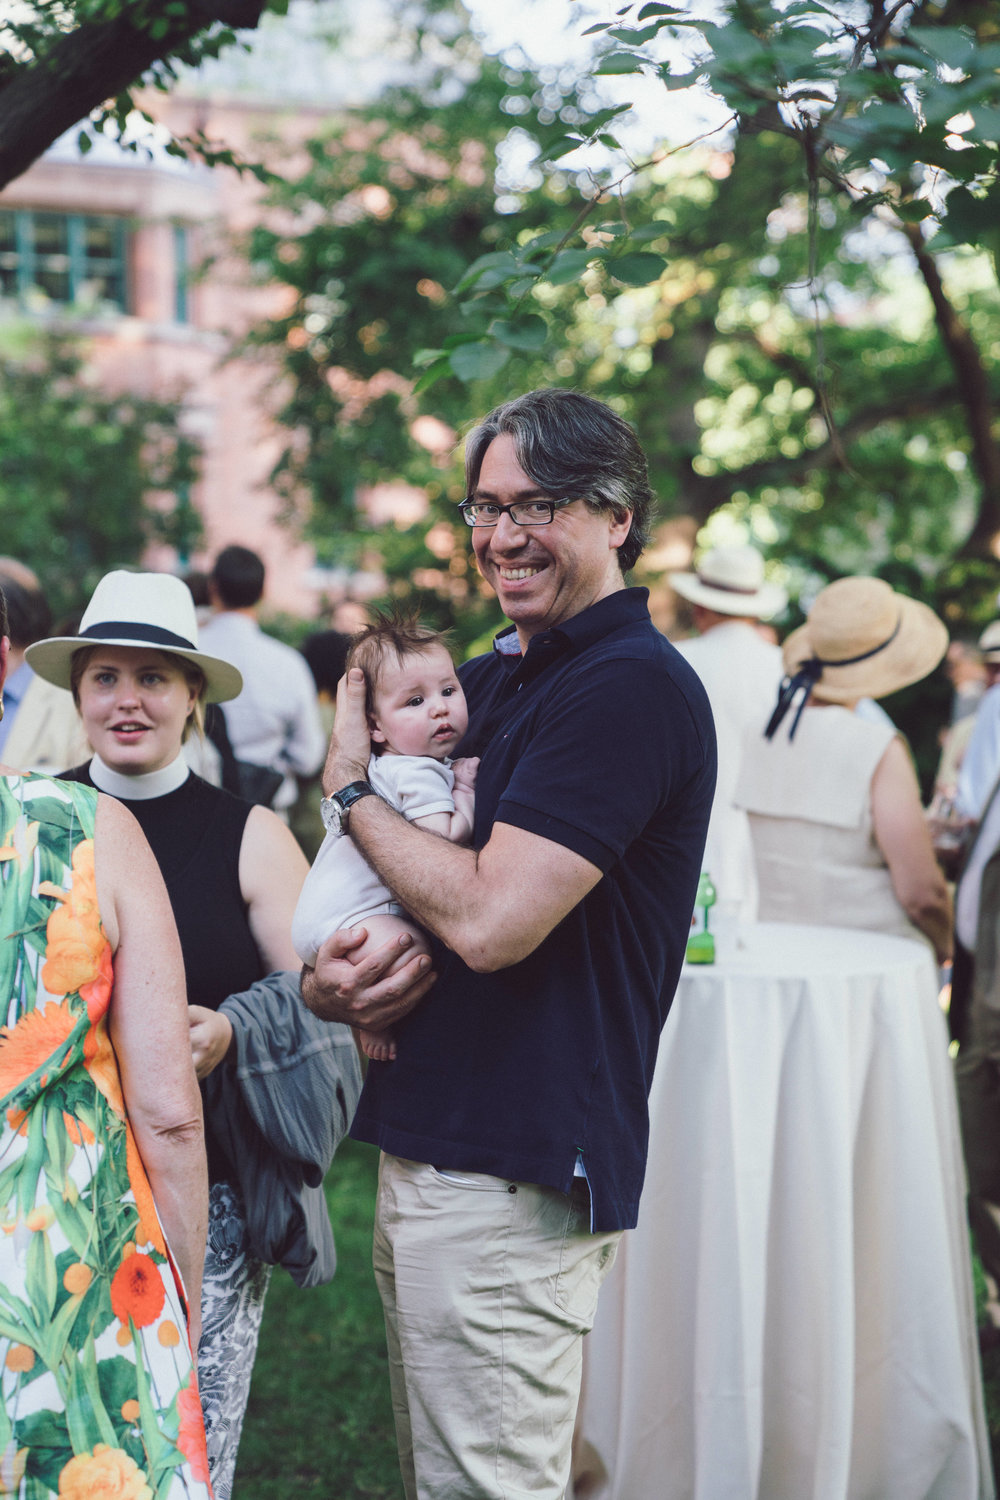 Attendees of The General Seminary's Annual Garden Party. Photo by Daniel Lee.